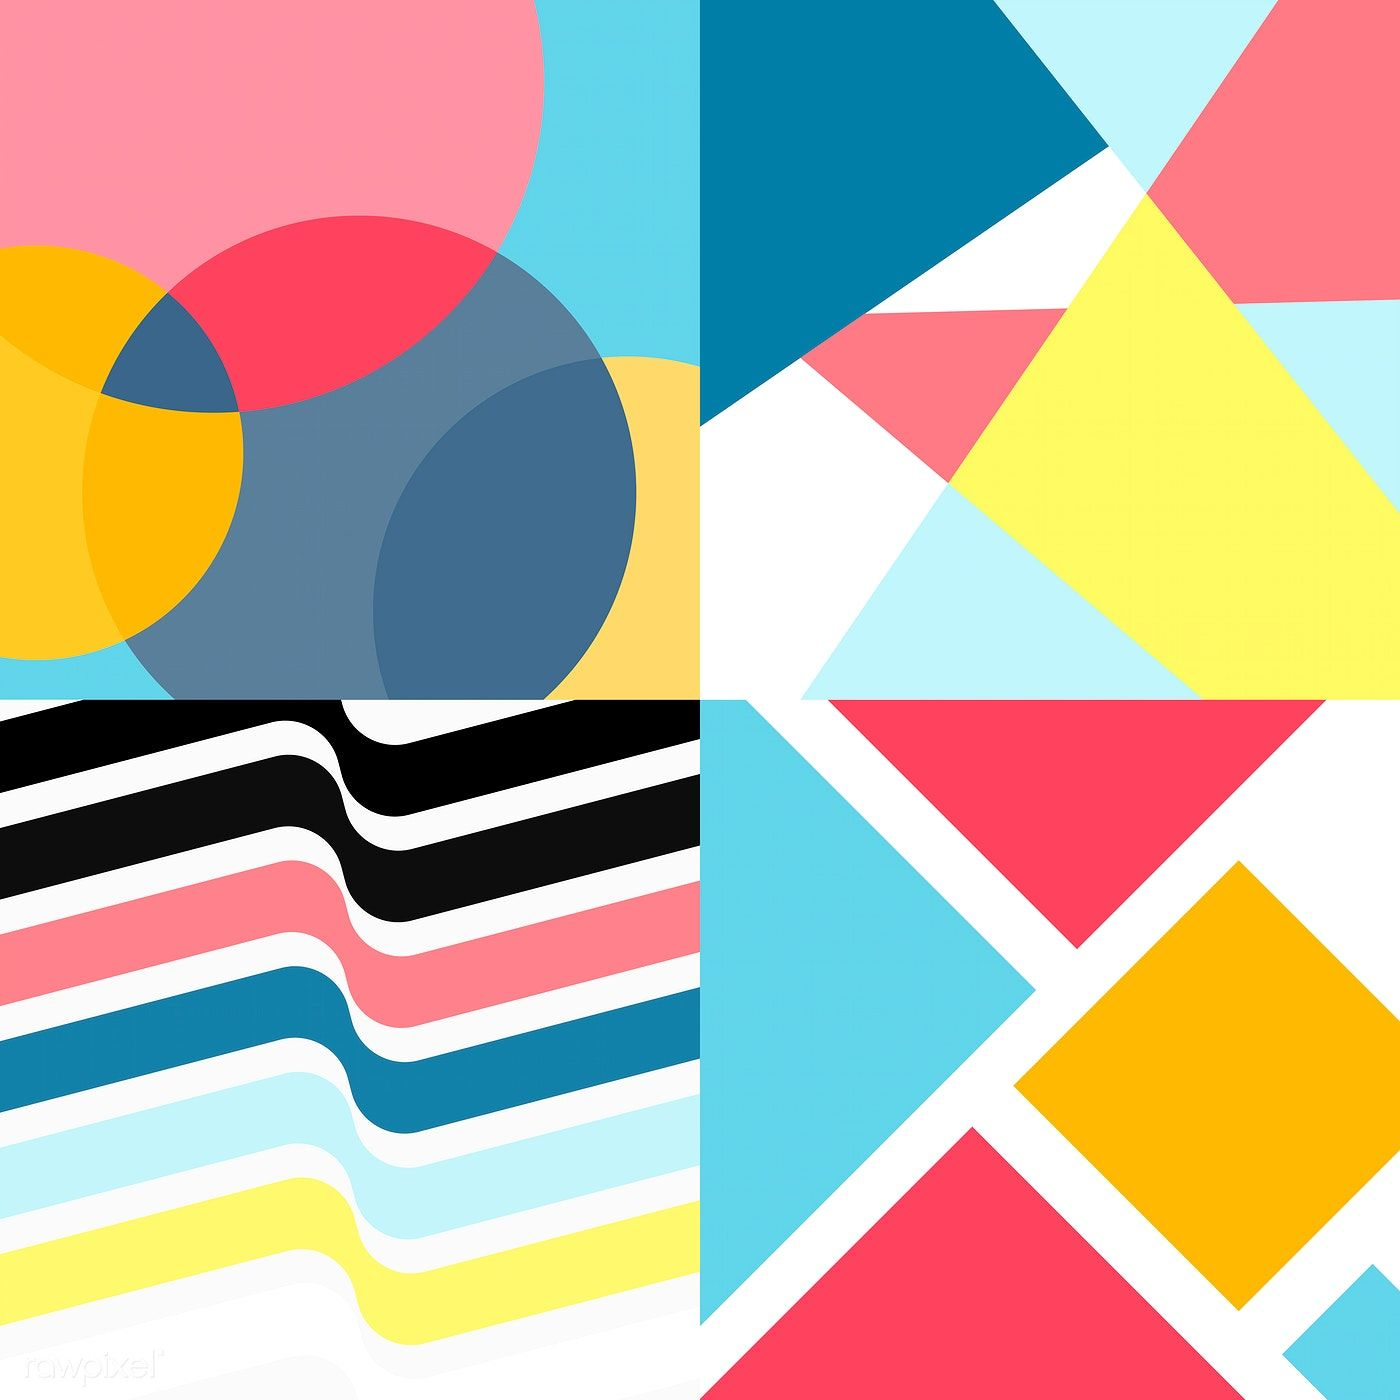 Colorful Swiss Graphic Design Patterns Collection Free Image By